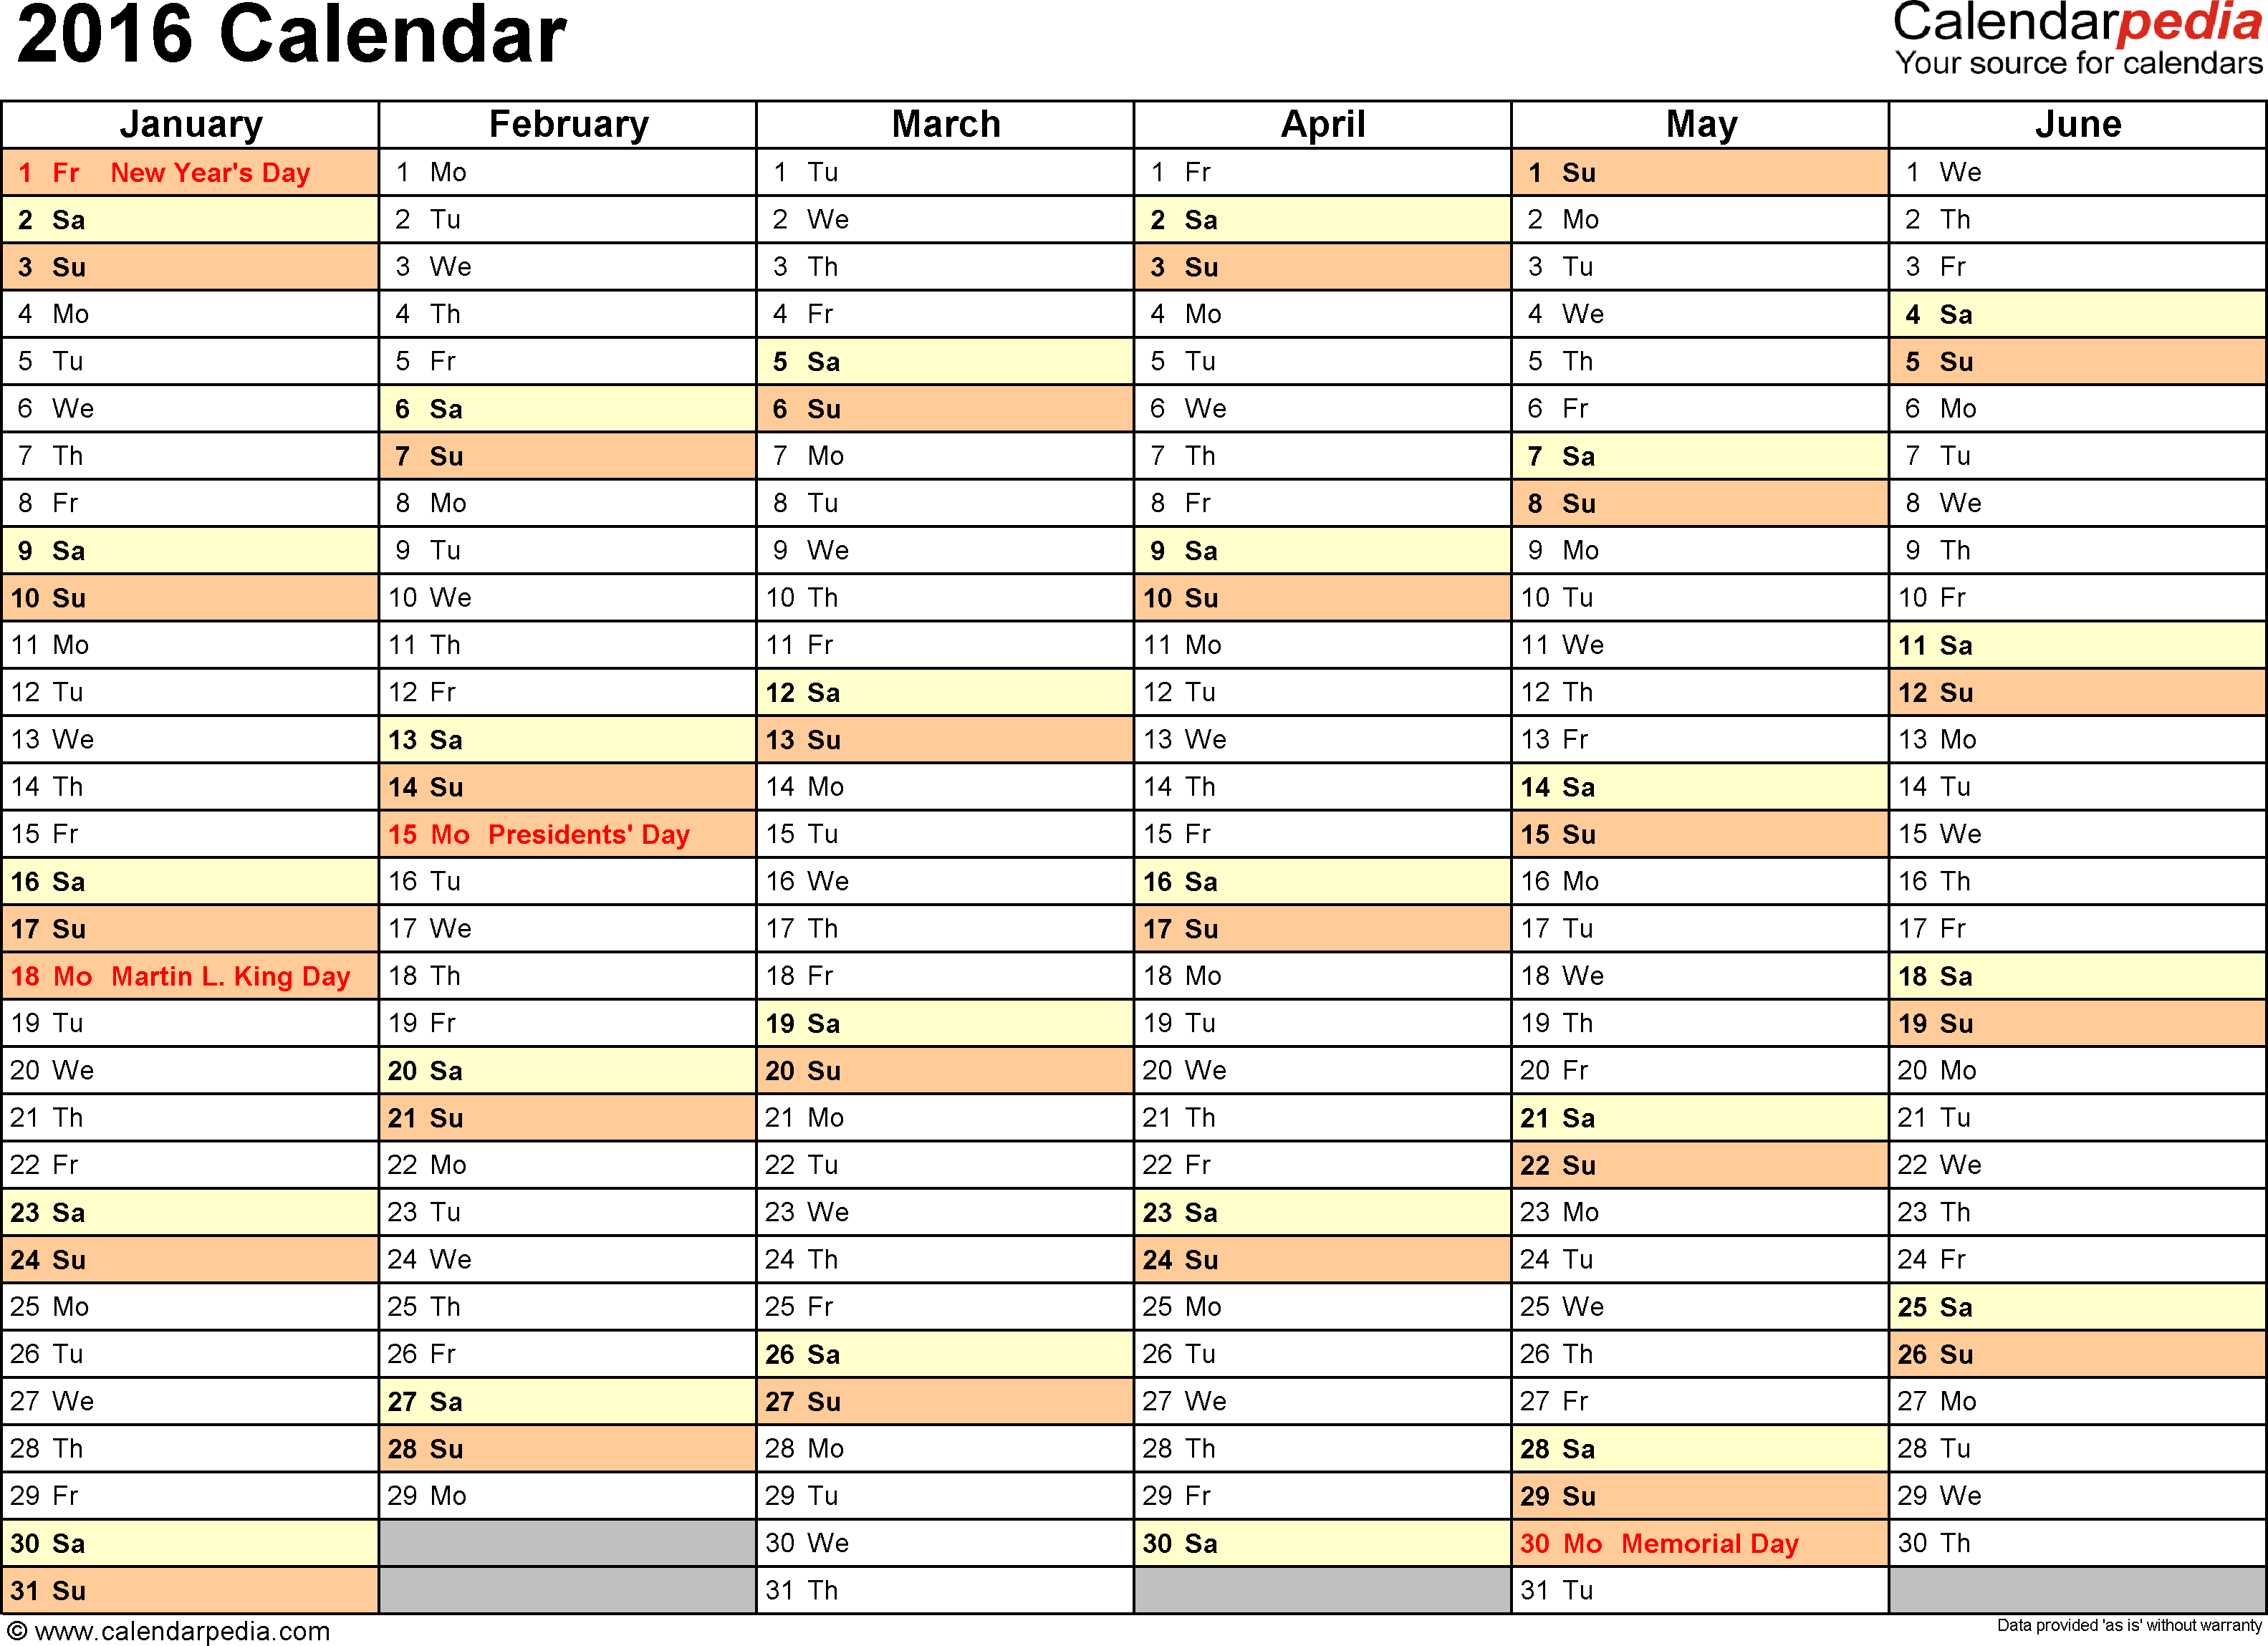 Ediblewildsus  Seductive  Calendar  Download  Free Printable Excel Templates Xls With Remarkable Template   Calendar For Excel Months Horizontally  Pages Landscape Orientation With Adorable How To Run A Macro In Excel  Also How To Add To Drop Down List In Excel In Addition Excel Convert Text To Date And Insert Multiple Rows In Excel As Well As Combining Cells In Excel Additionally Excel Highlight Every Other Row From Calendarpediacom With Ediblewildsus  Remarkable  Calendar  Download  Free Printable Excel Templates Xls With Adorable Template   Calendar For Excel Months Horizontally  Pages Landscape Orientation And Seductive How To Run A Macro In Excel  Also How To Add To Drop Down List In Excel In Addition Excel Convert Text To Date From Calendarpediacom